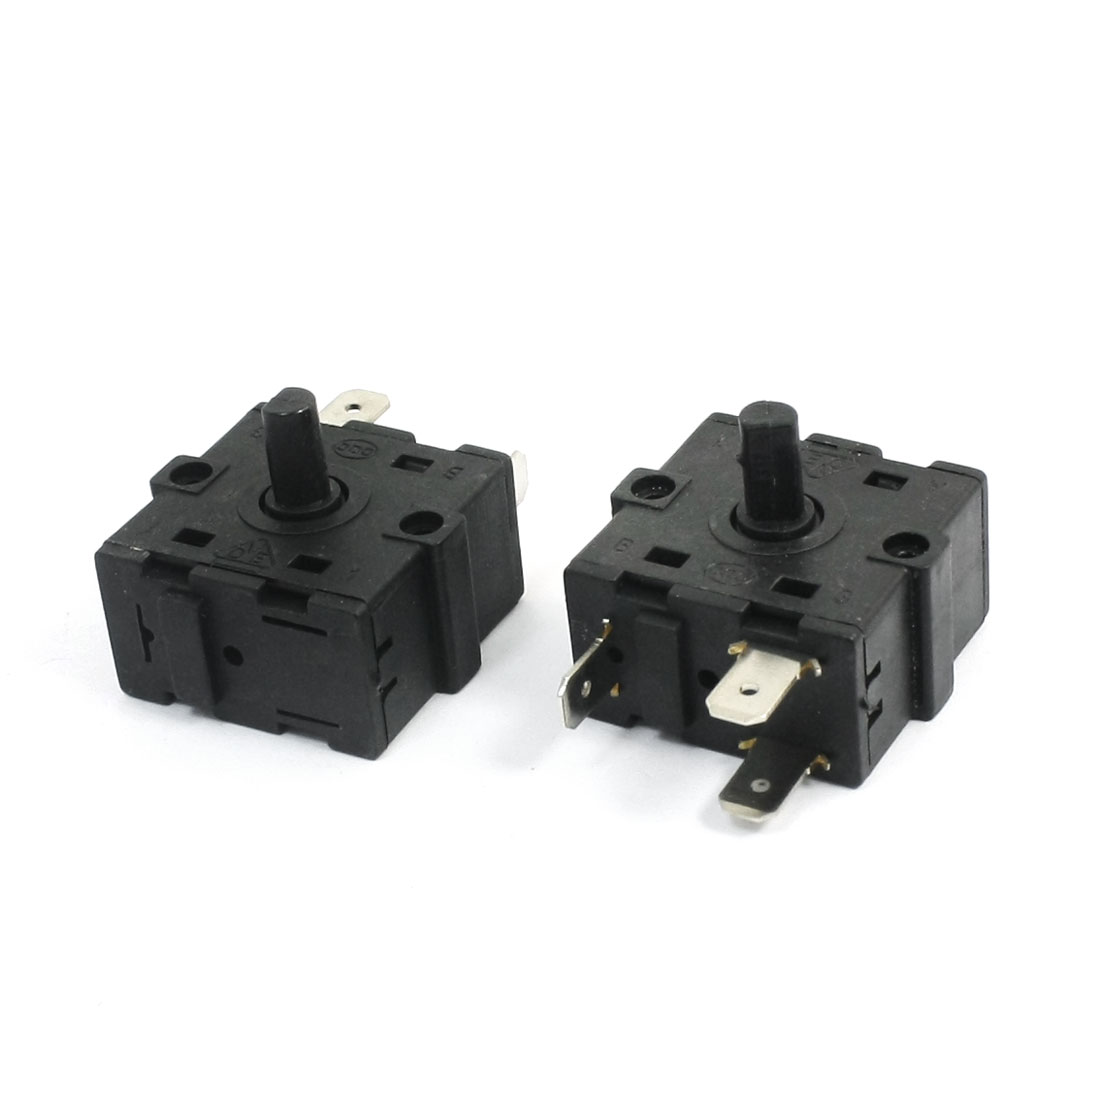 2Pcs AC250V 10A 3Pin 3Position Black Plastic Rotary Switch Selector for Electric Room Heater Oven Stove